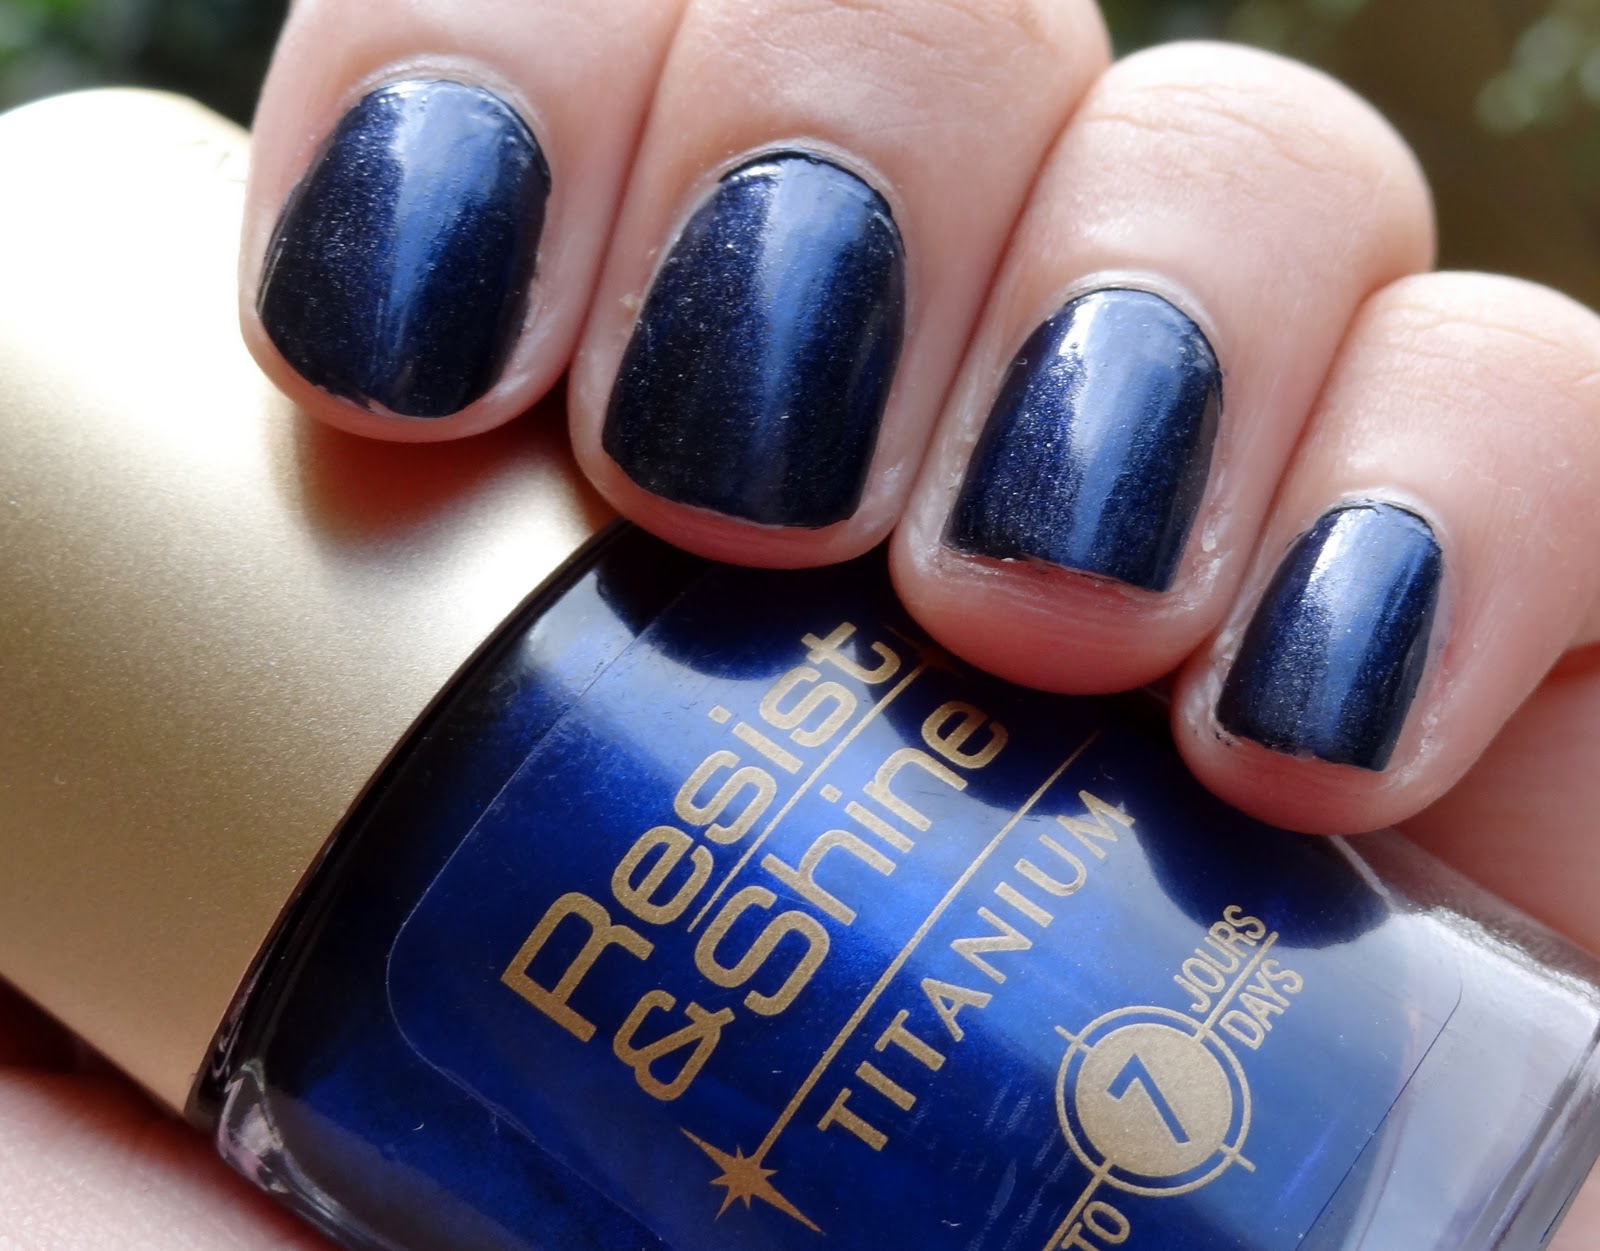 The 10 Best Navy Blue NailPolishes The 10 Best Navy Blue NailPolishes new pictures